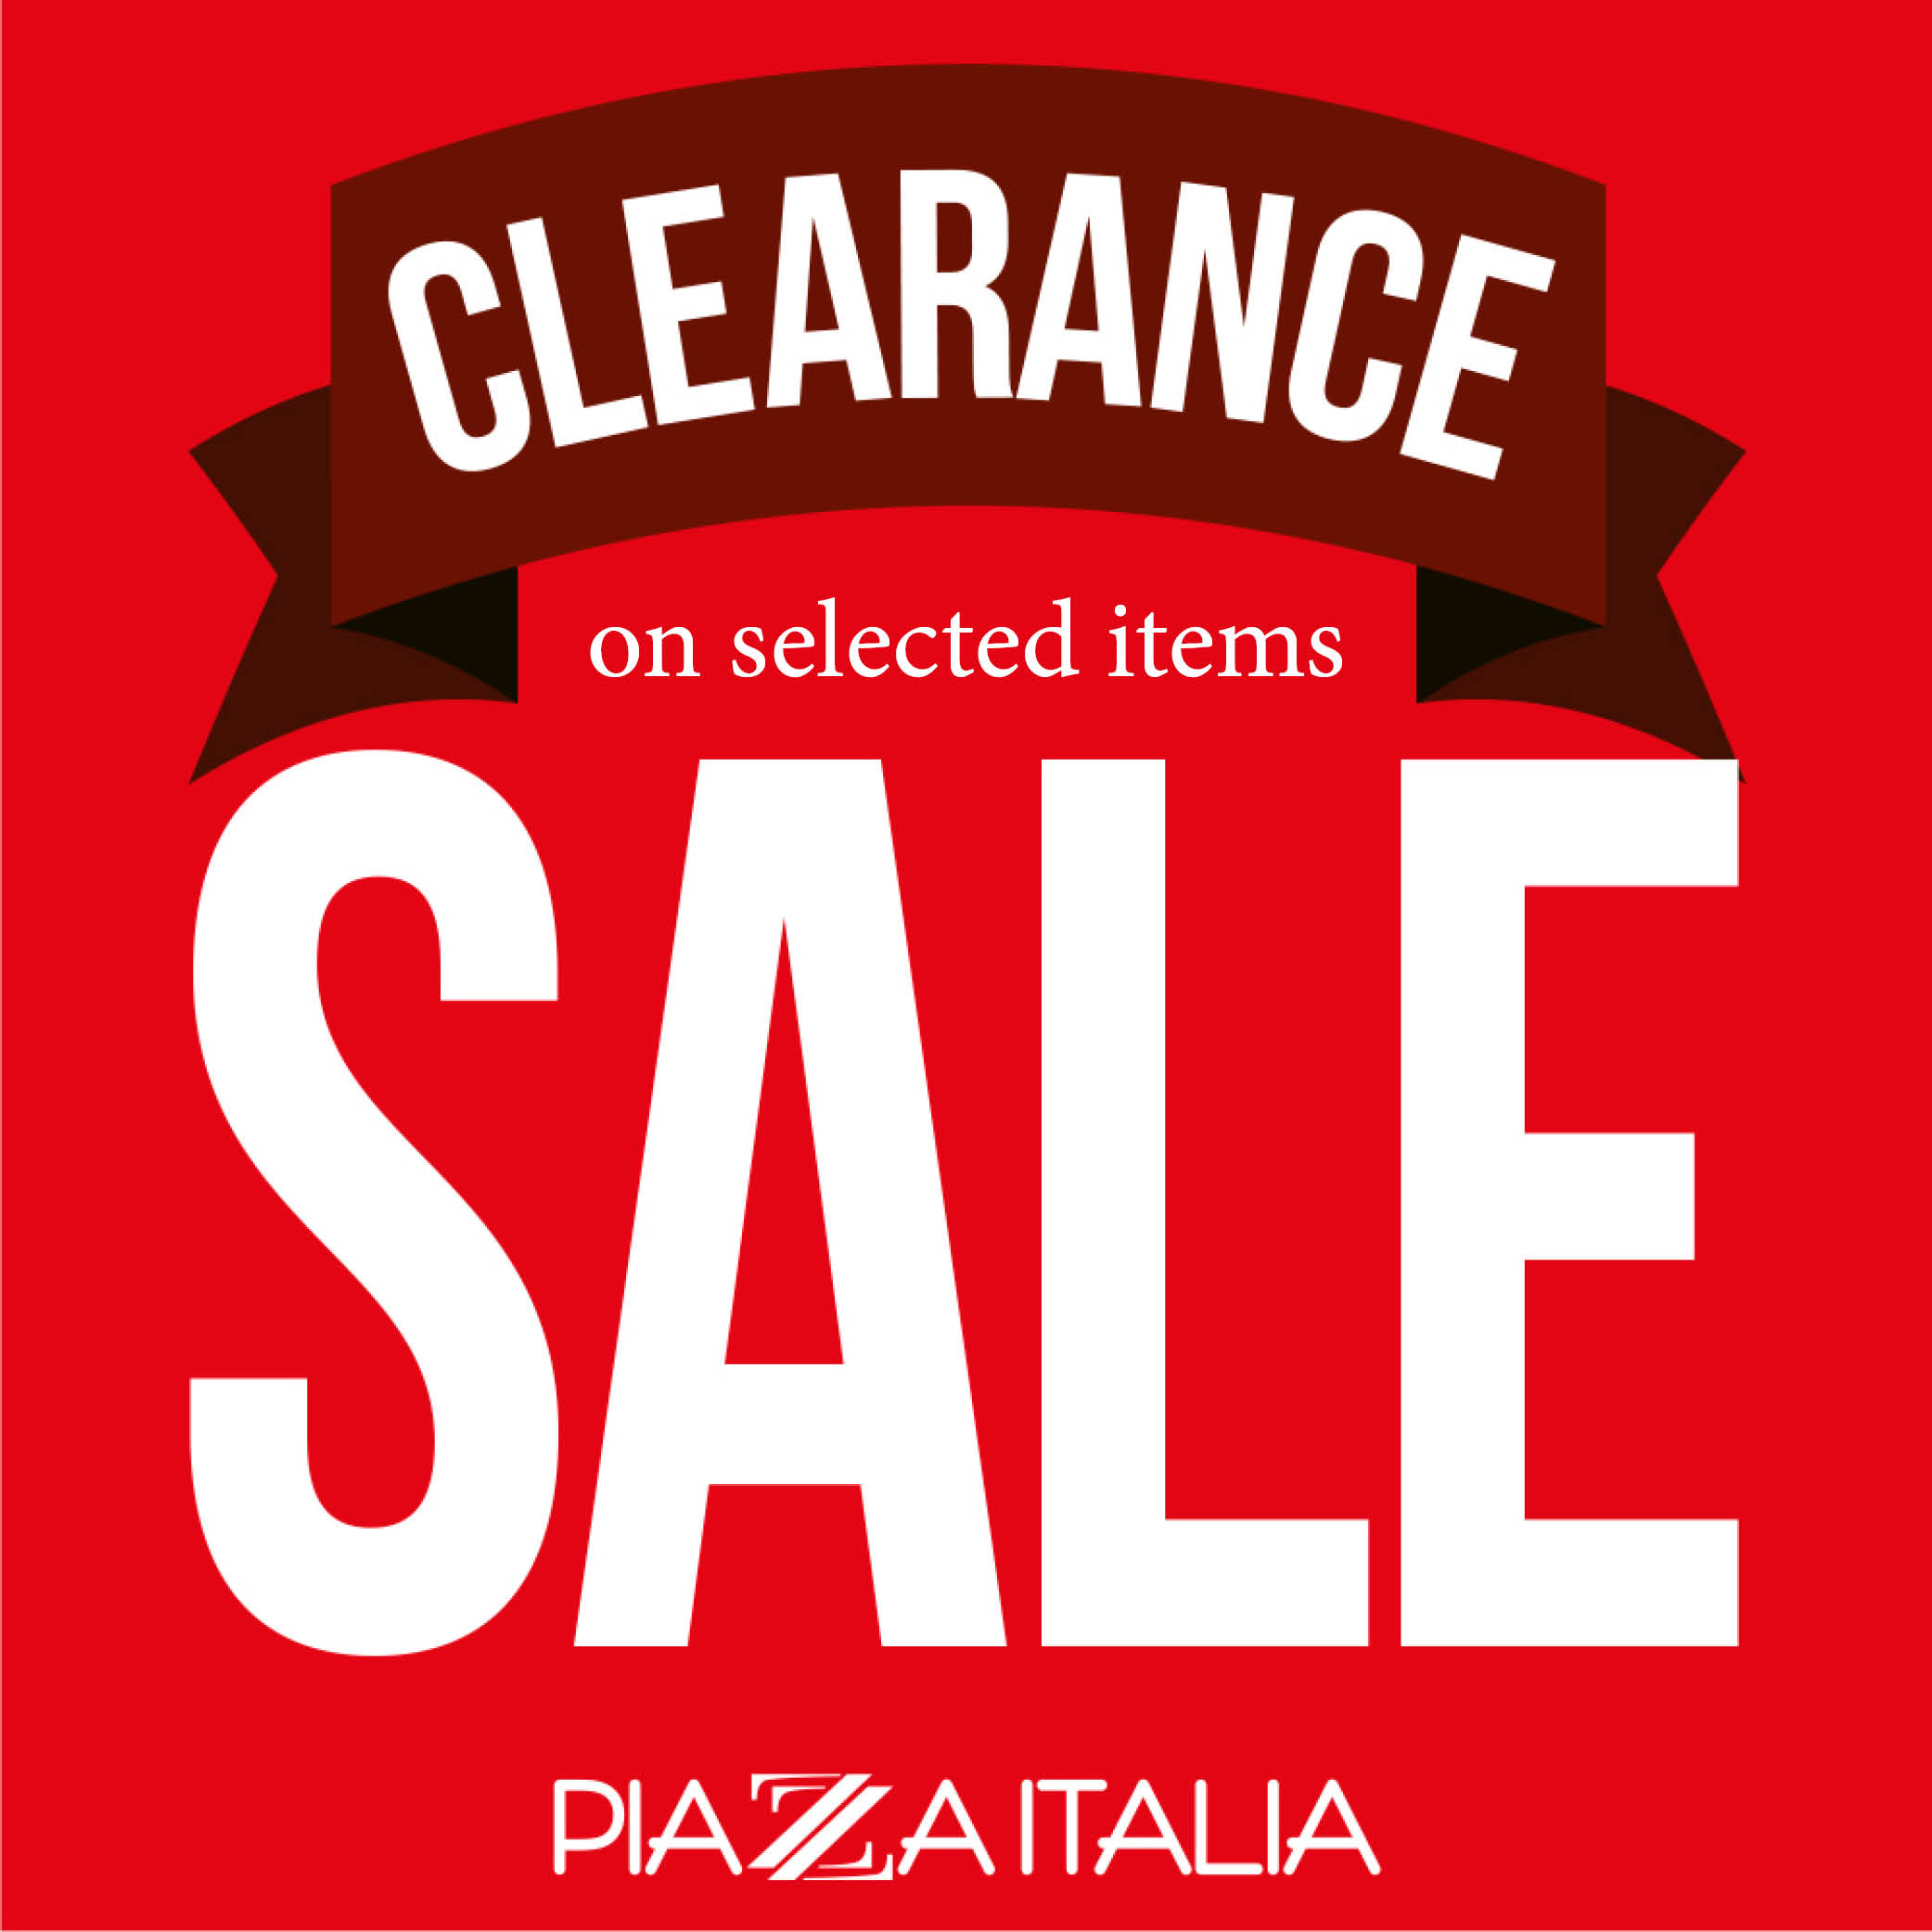 Shop a wide selection of Clearance Tennis Apparel at DICK'S Sporting Goods and order online for the finest quality products from the top brands you trust.